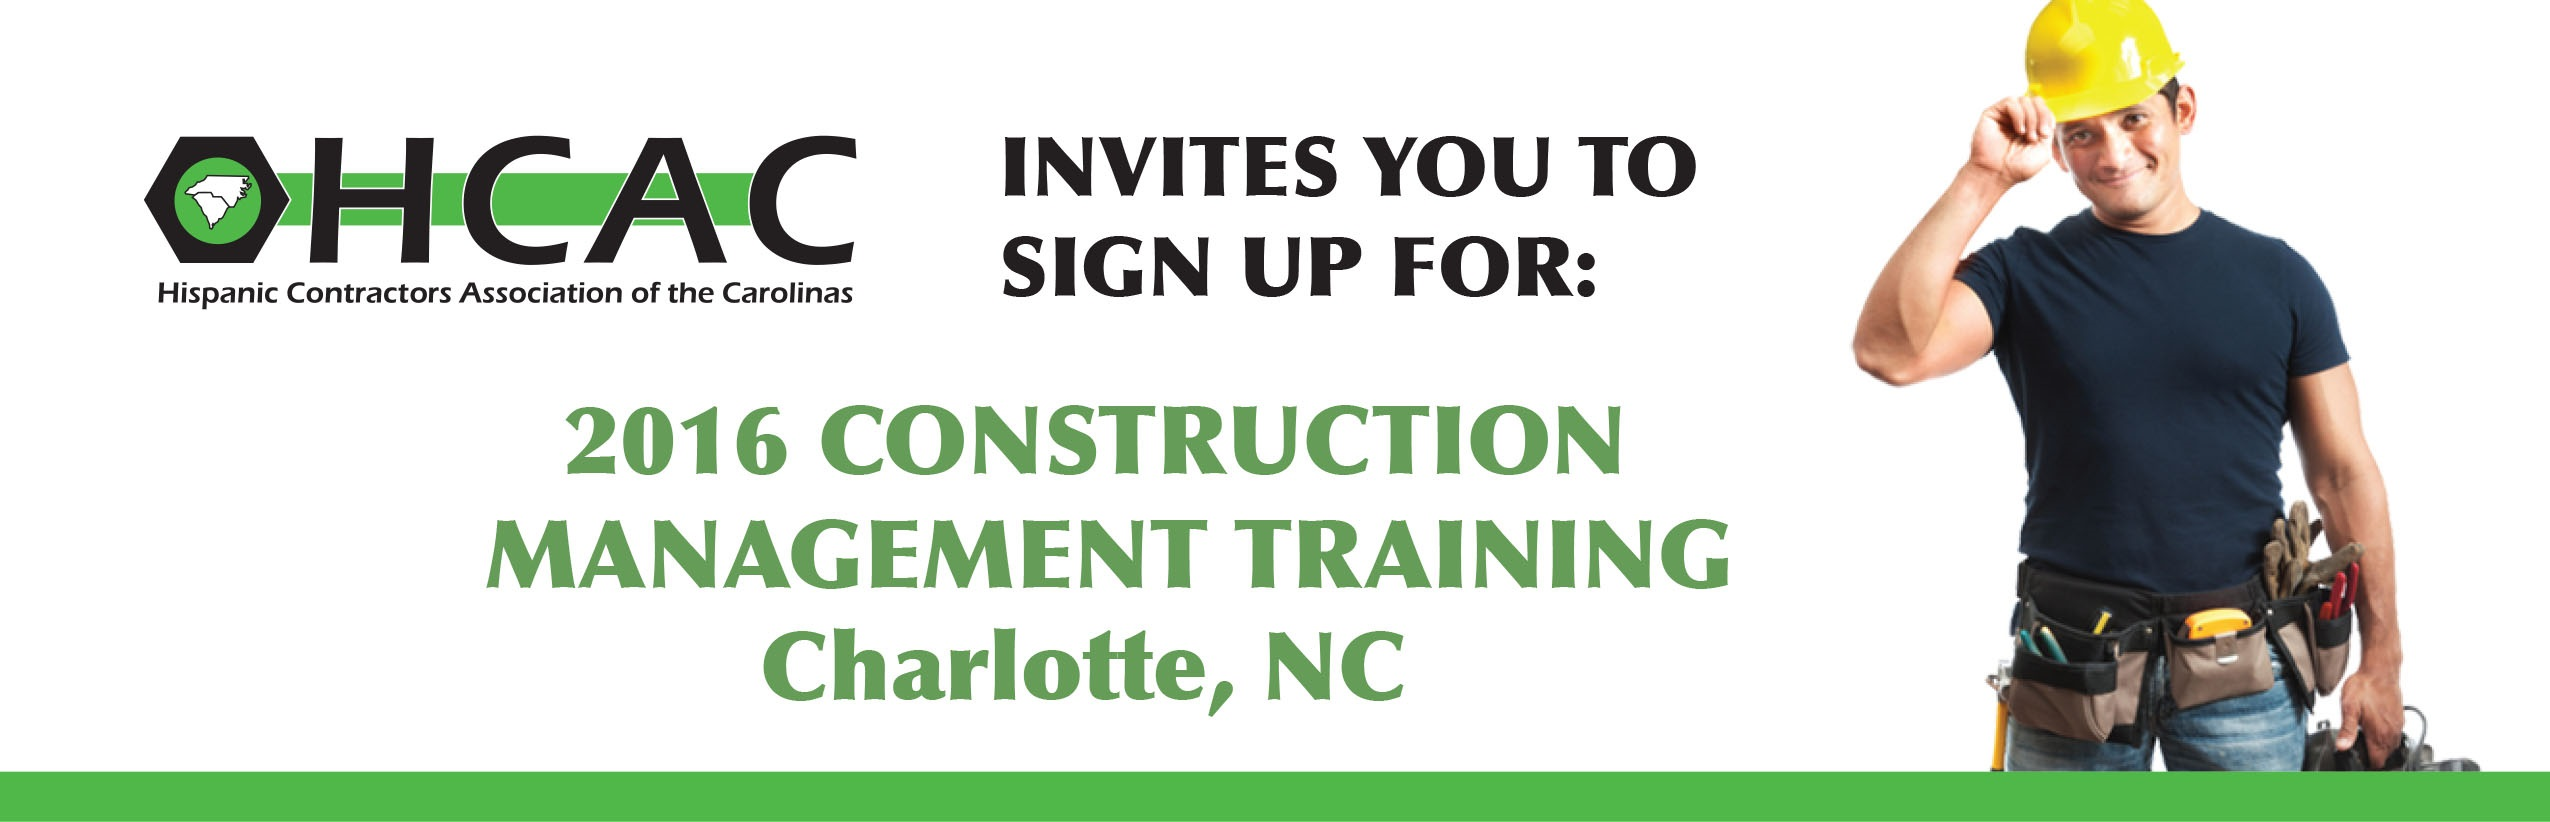 Construction Management Hcac Plans Construction Management Training Program With